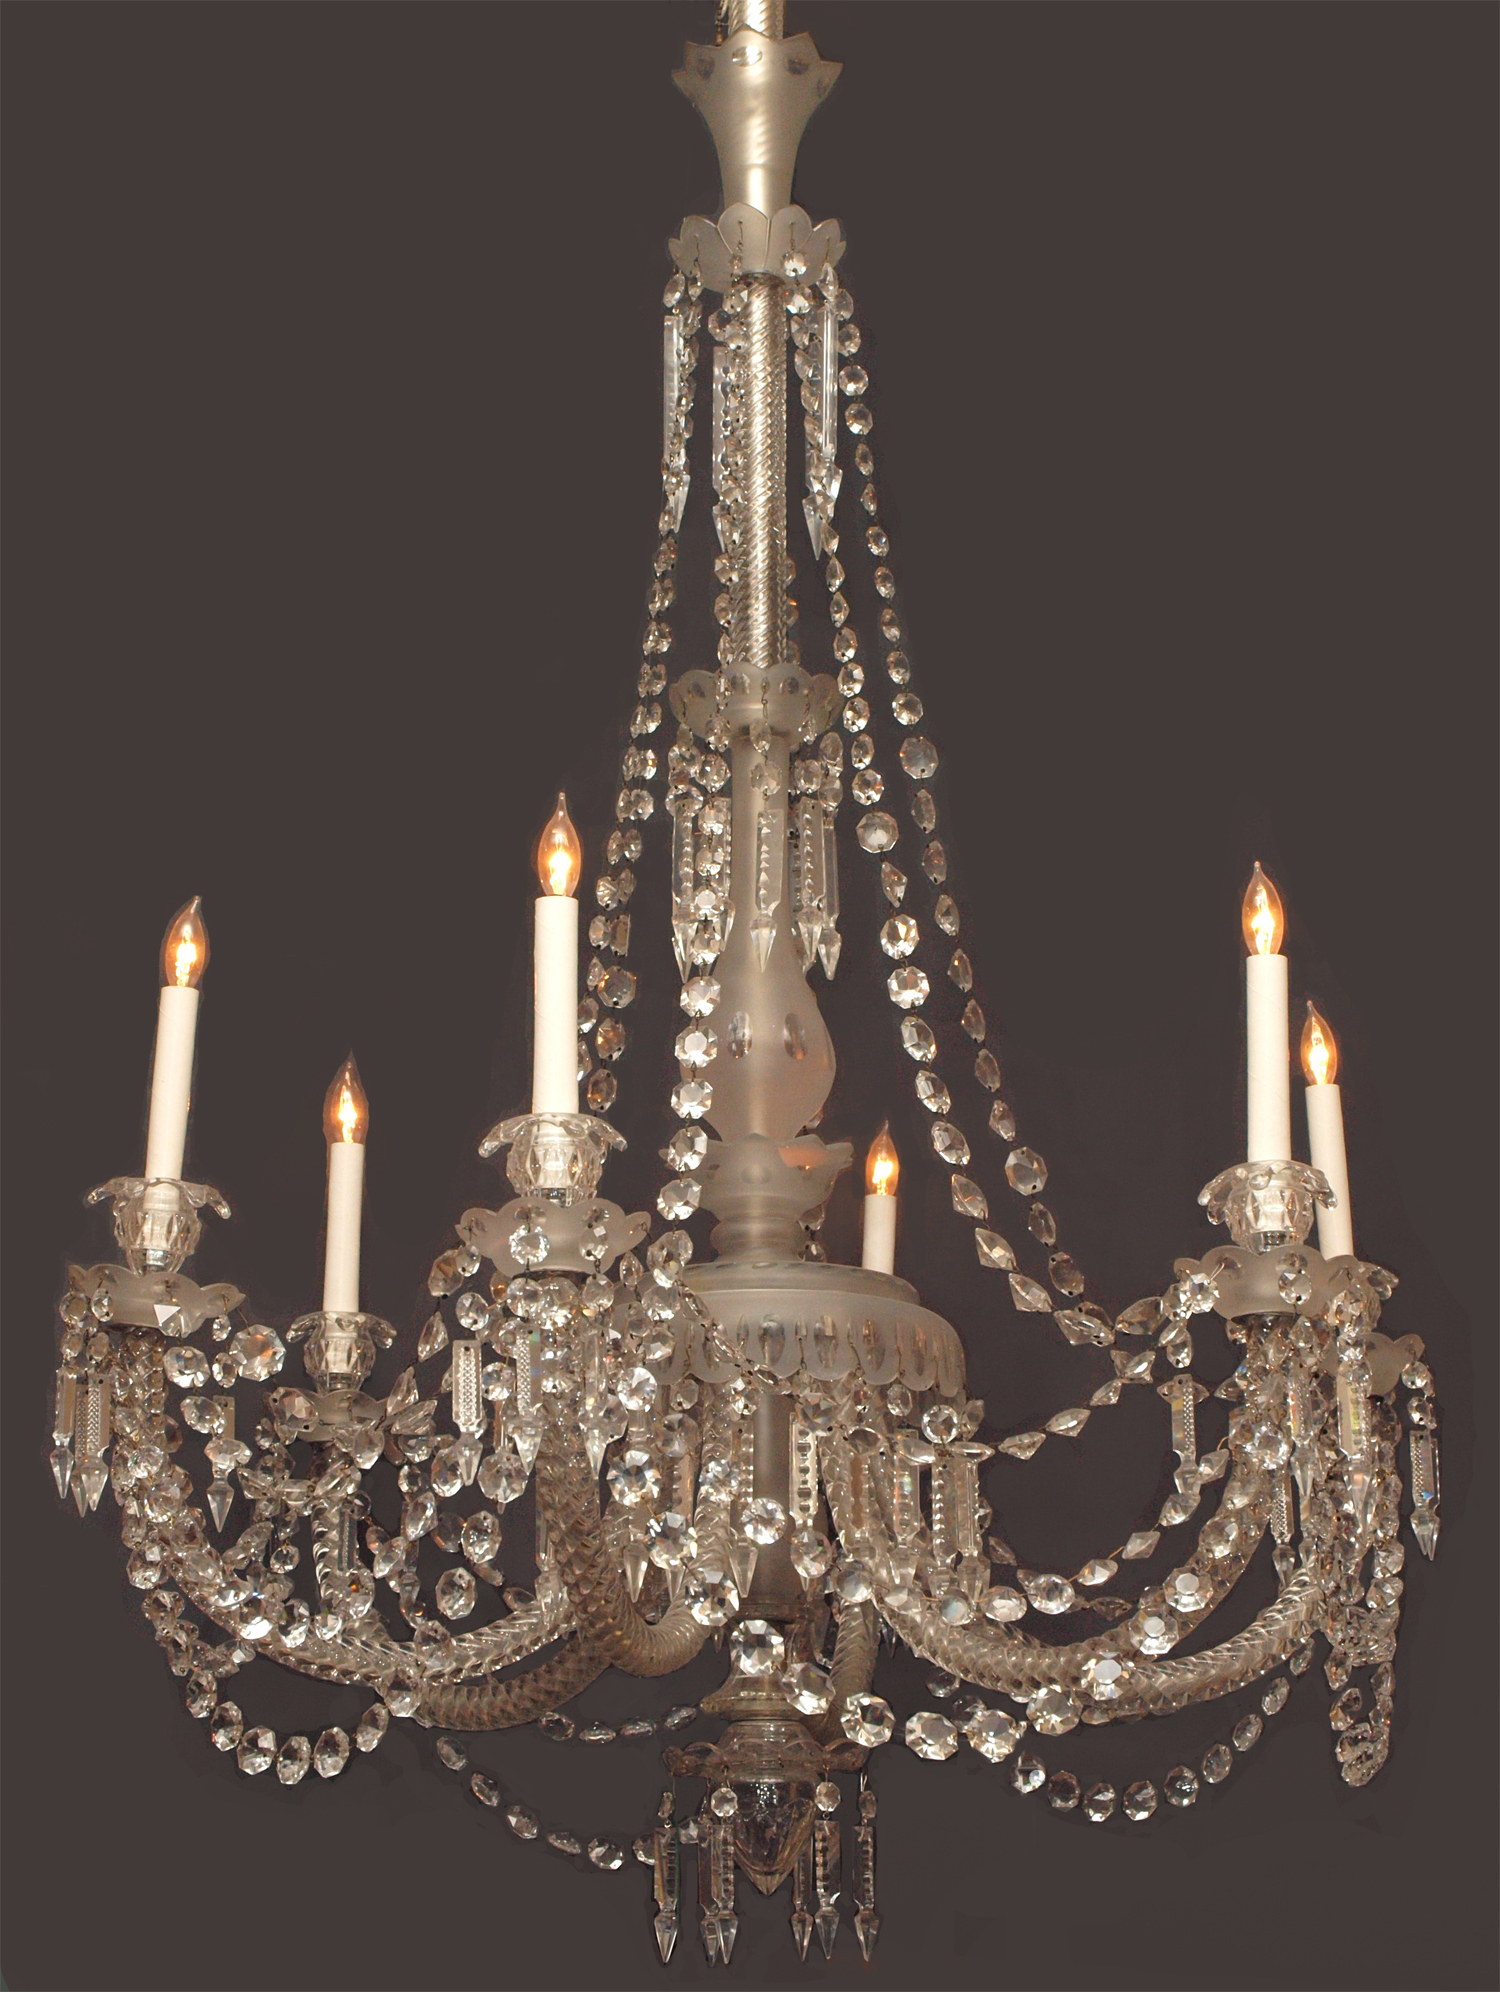 Antique english 19th century gasolier fine lead crystal chandelier antique english 19th century gasolier fine lead crystal chandelier chc24 for sale aloadofball Image collections